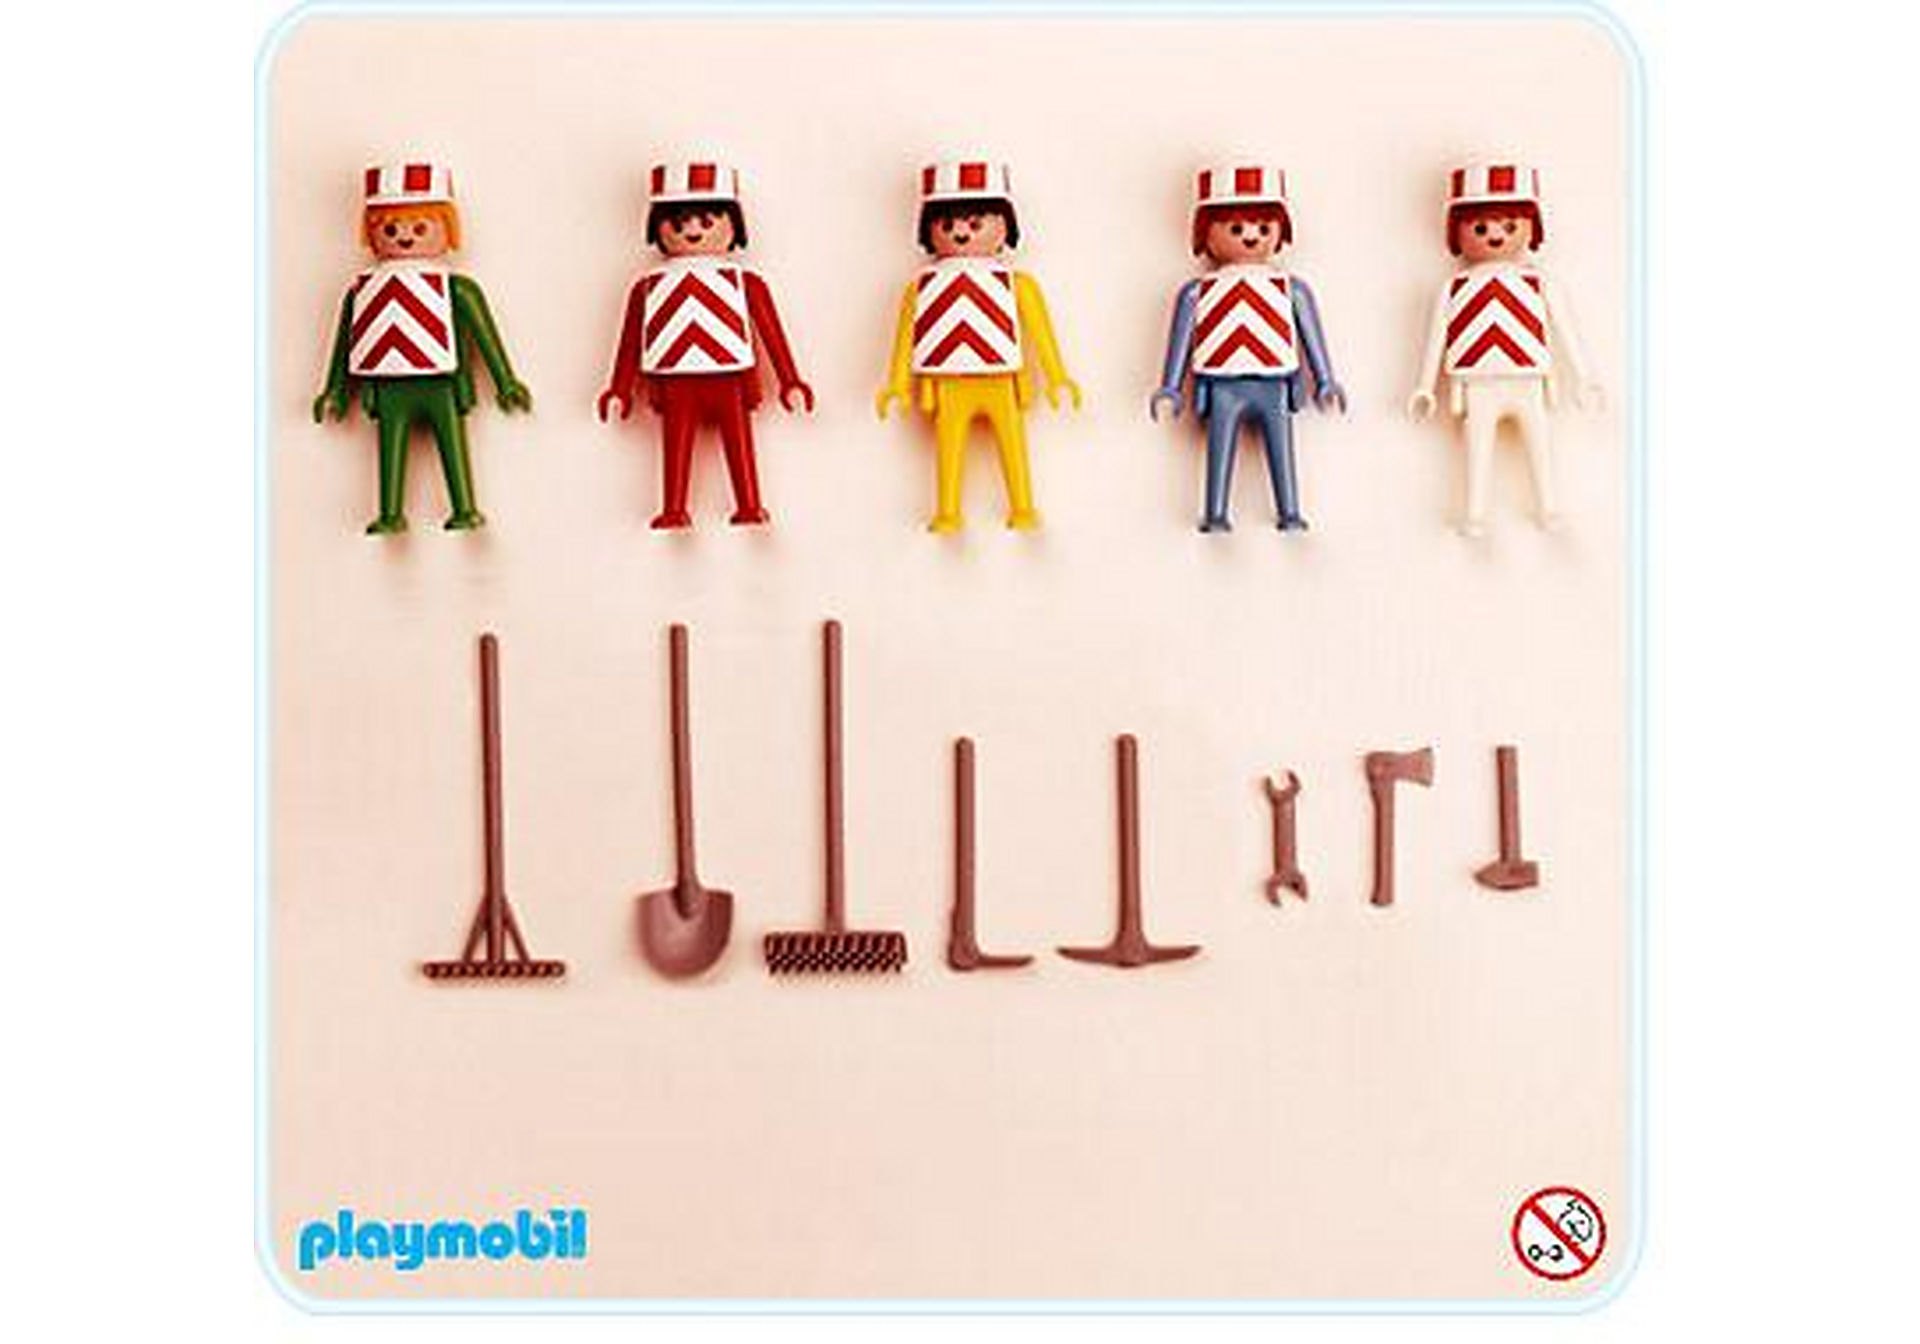 http://media.playmobil.com/i/playmobil/3111-A_product_detail/Tiefbauarbeiter-Set